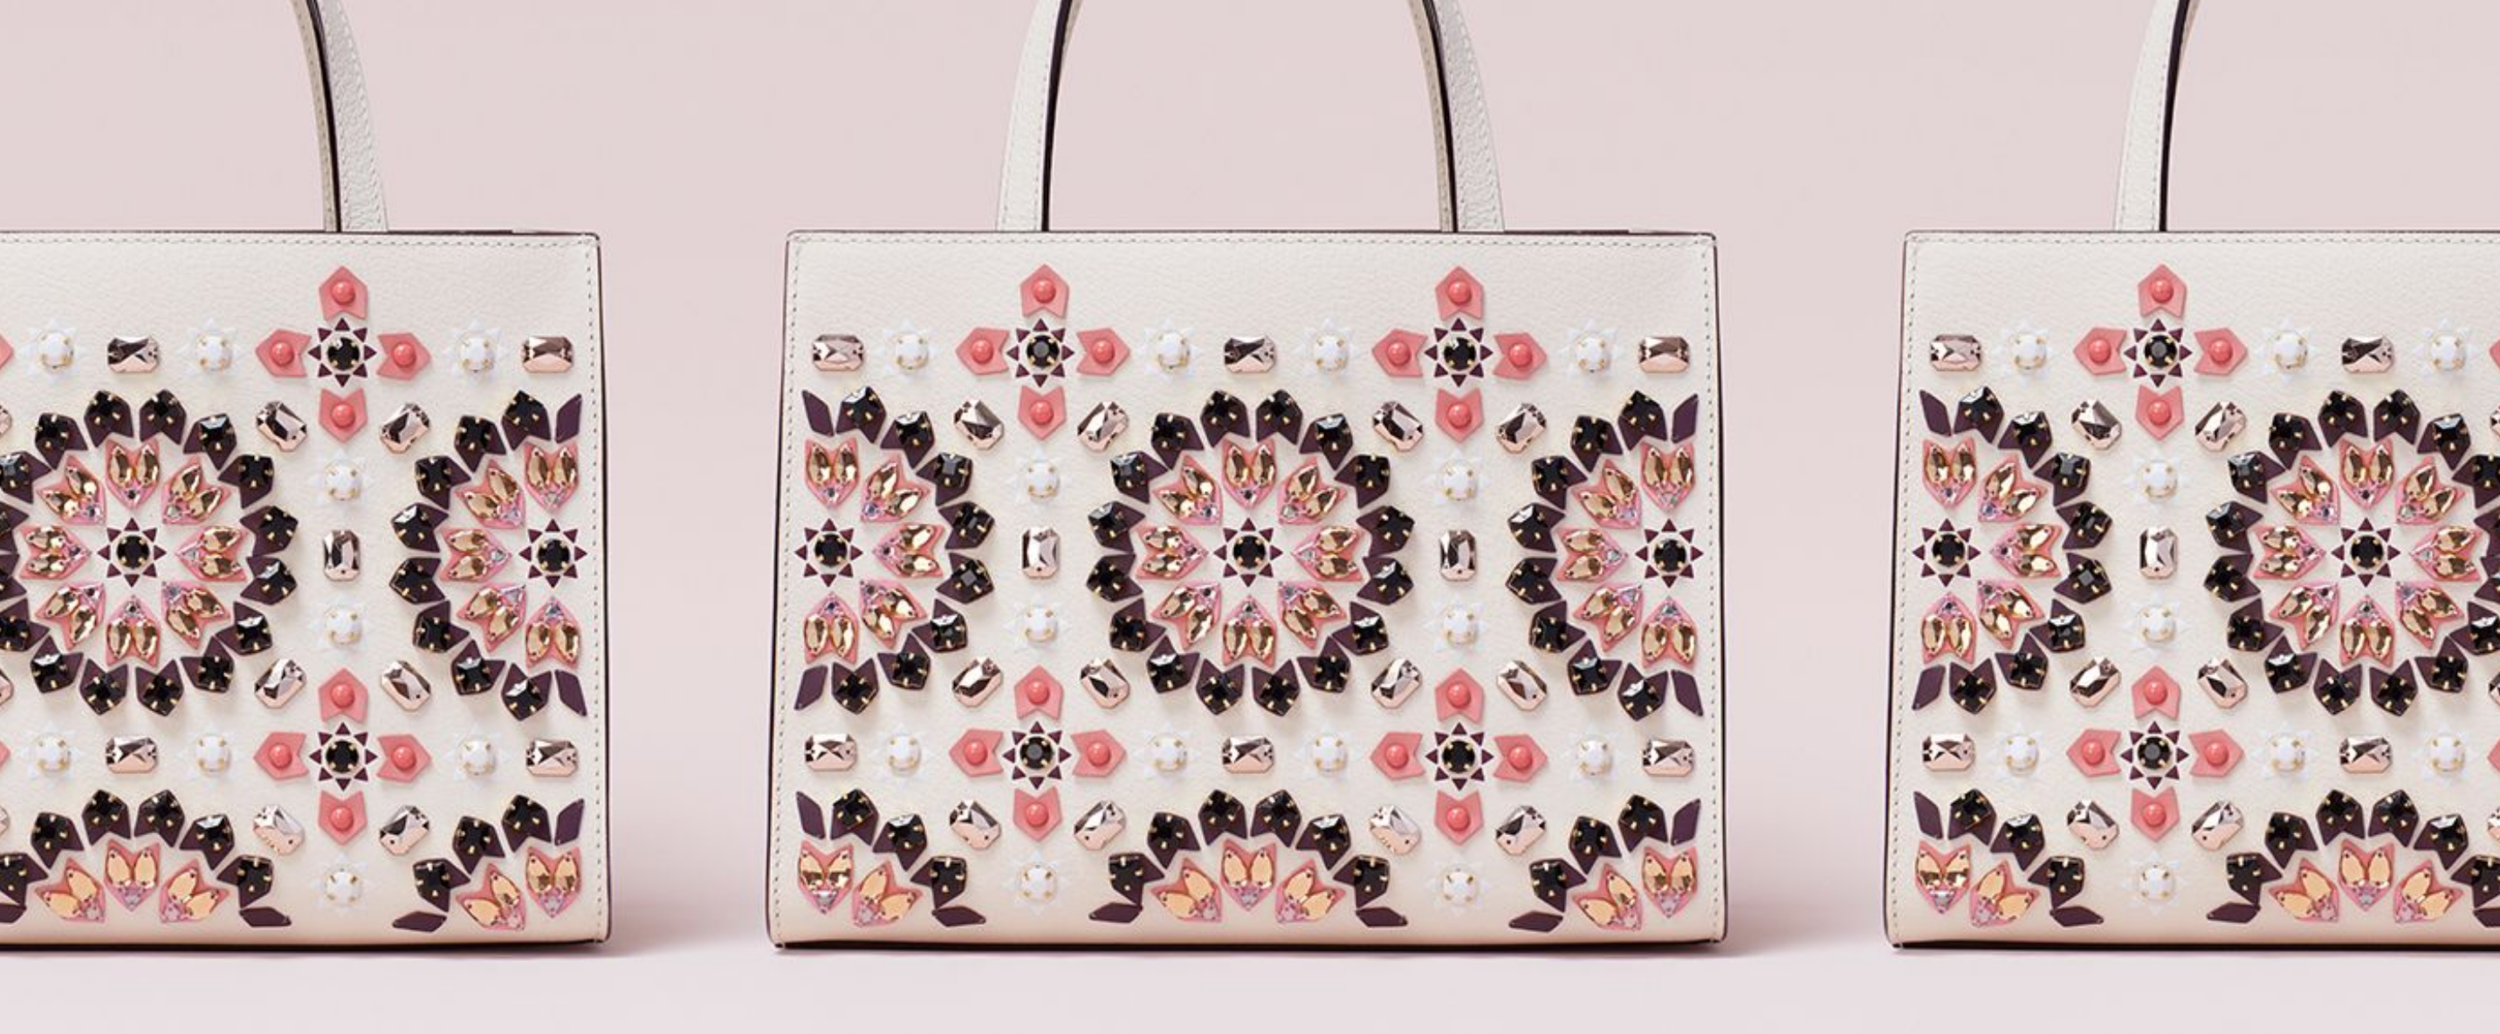 From the Latest Kate Spade Collection (Kate Spade)